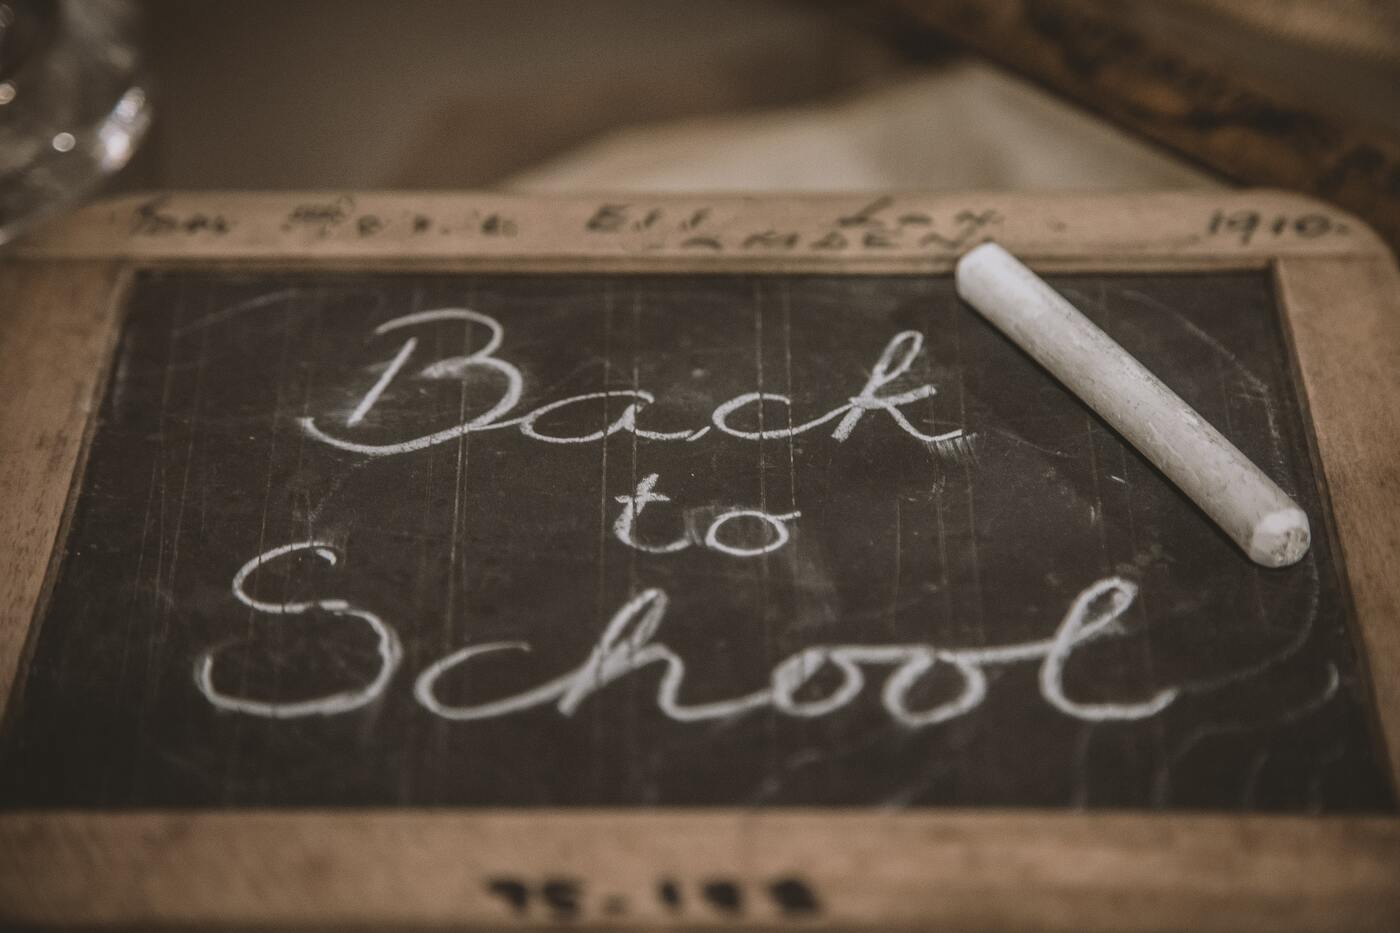 How to prepare for back to school 2021 - 2022